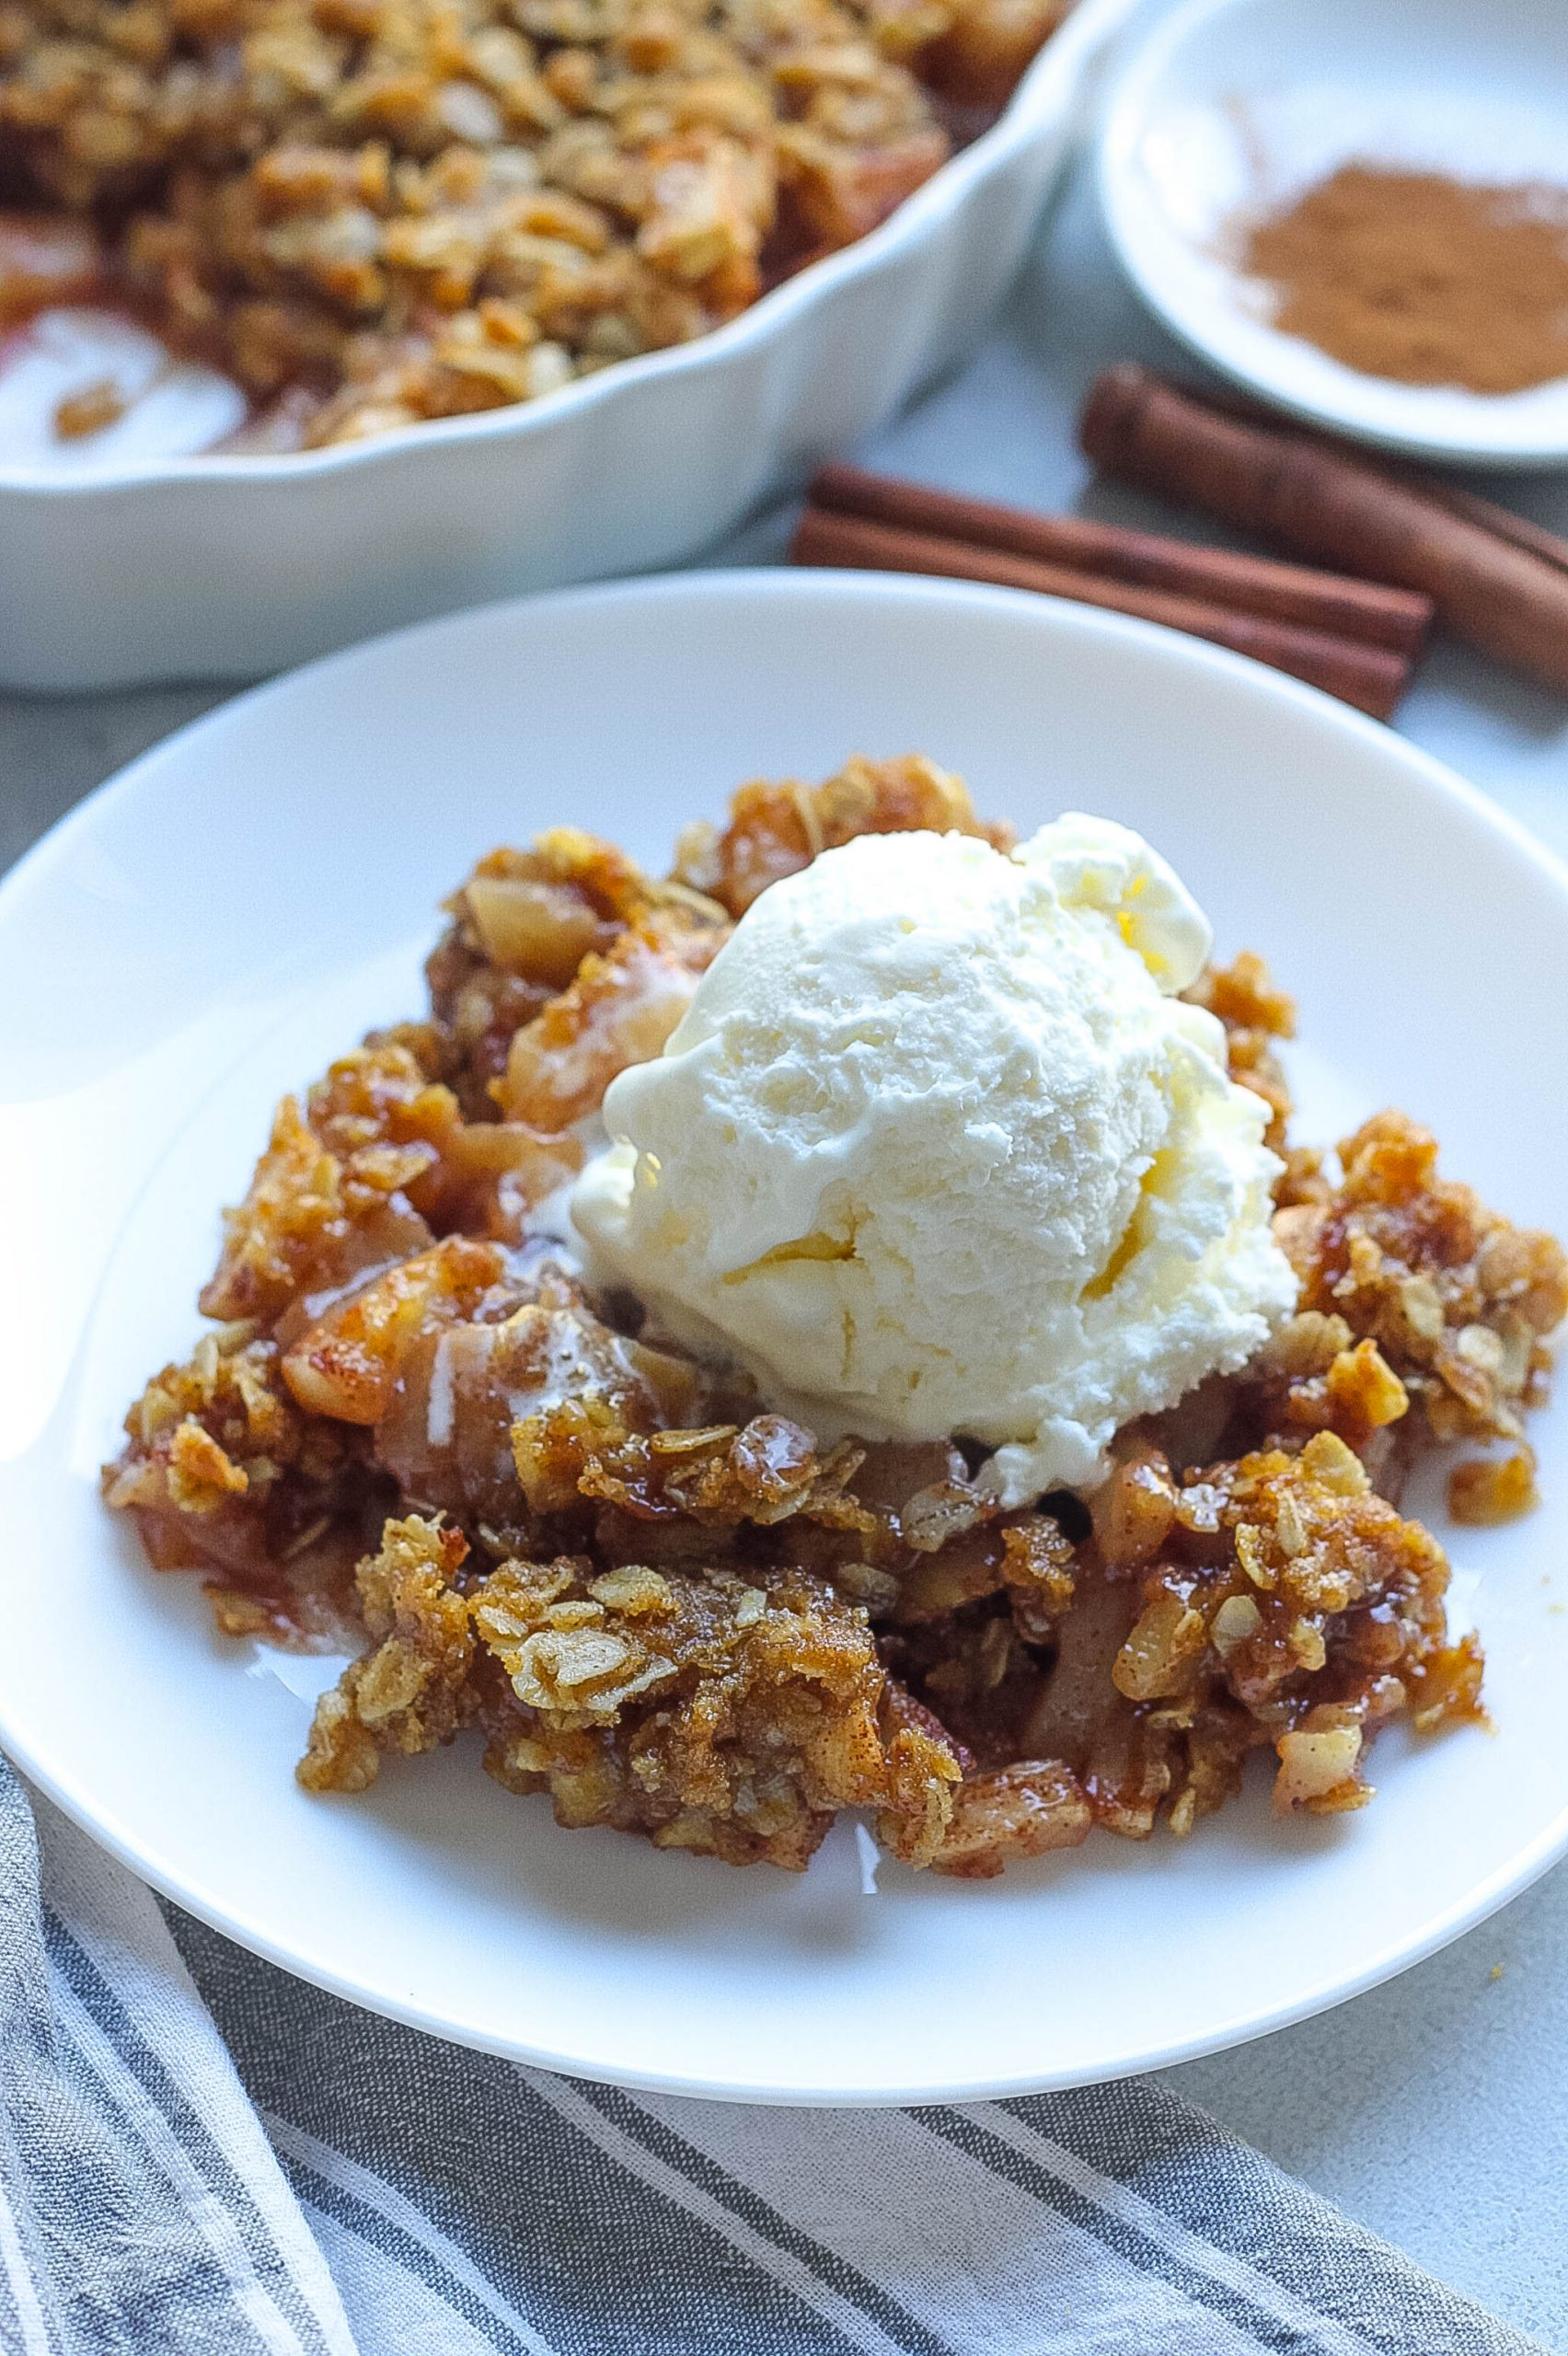 apple crispy with ice cream